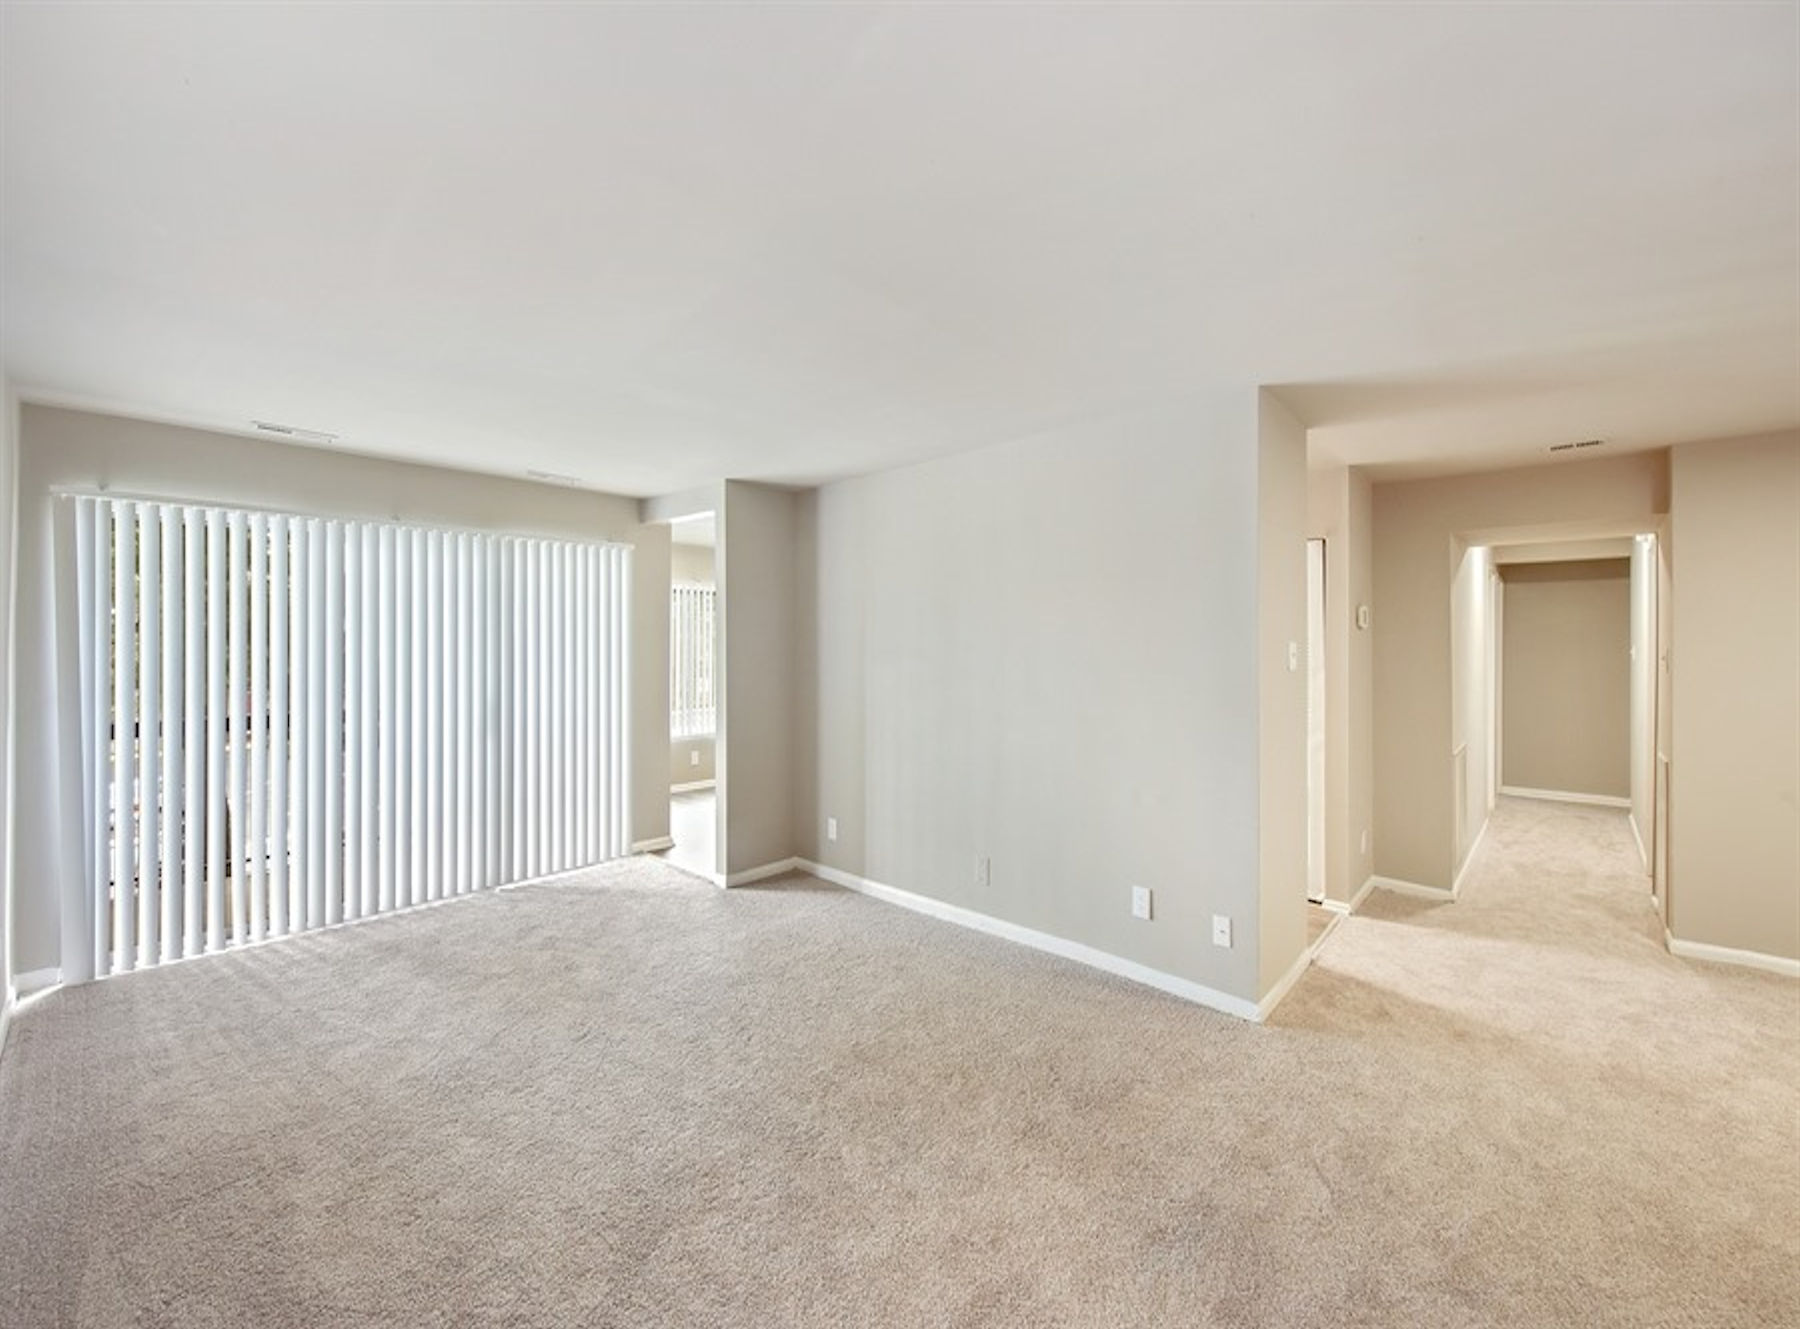 Model living room with large windows, private patio/balcony, and carpet.